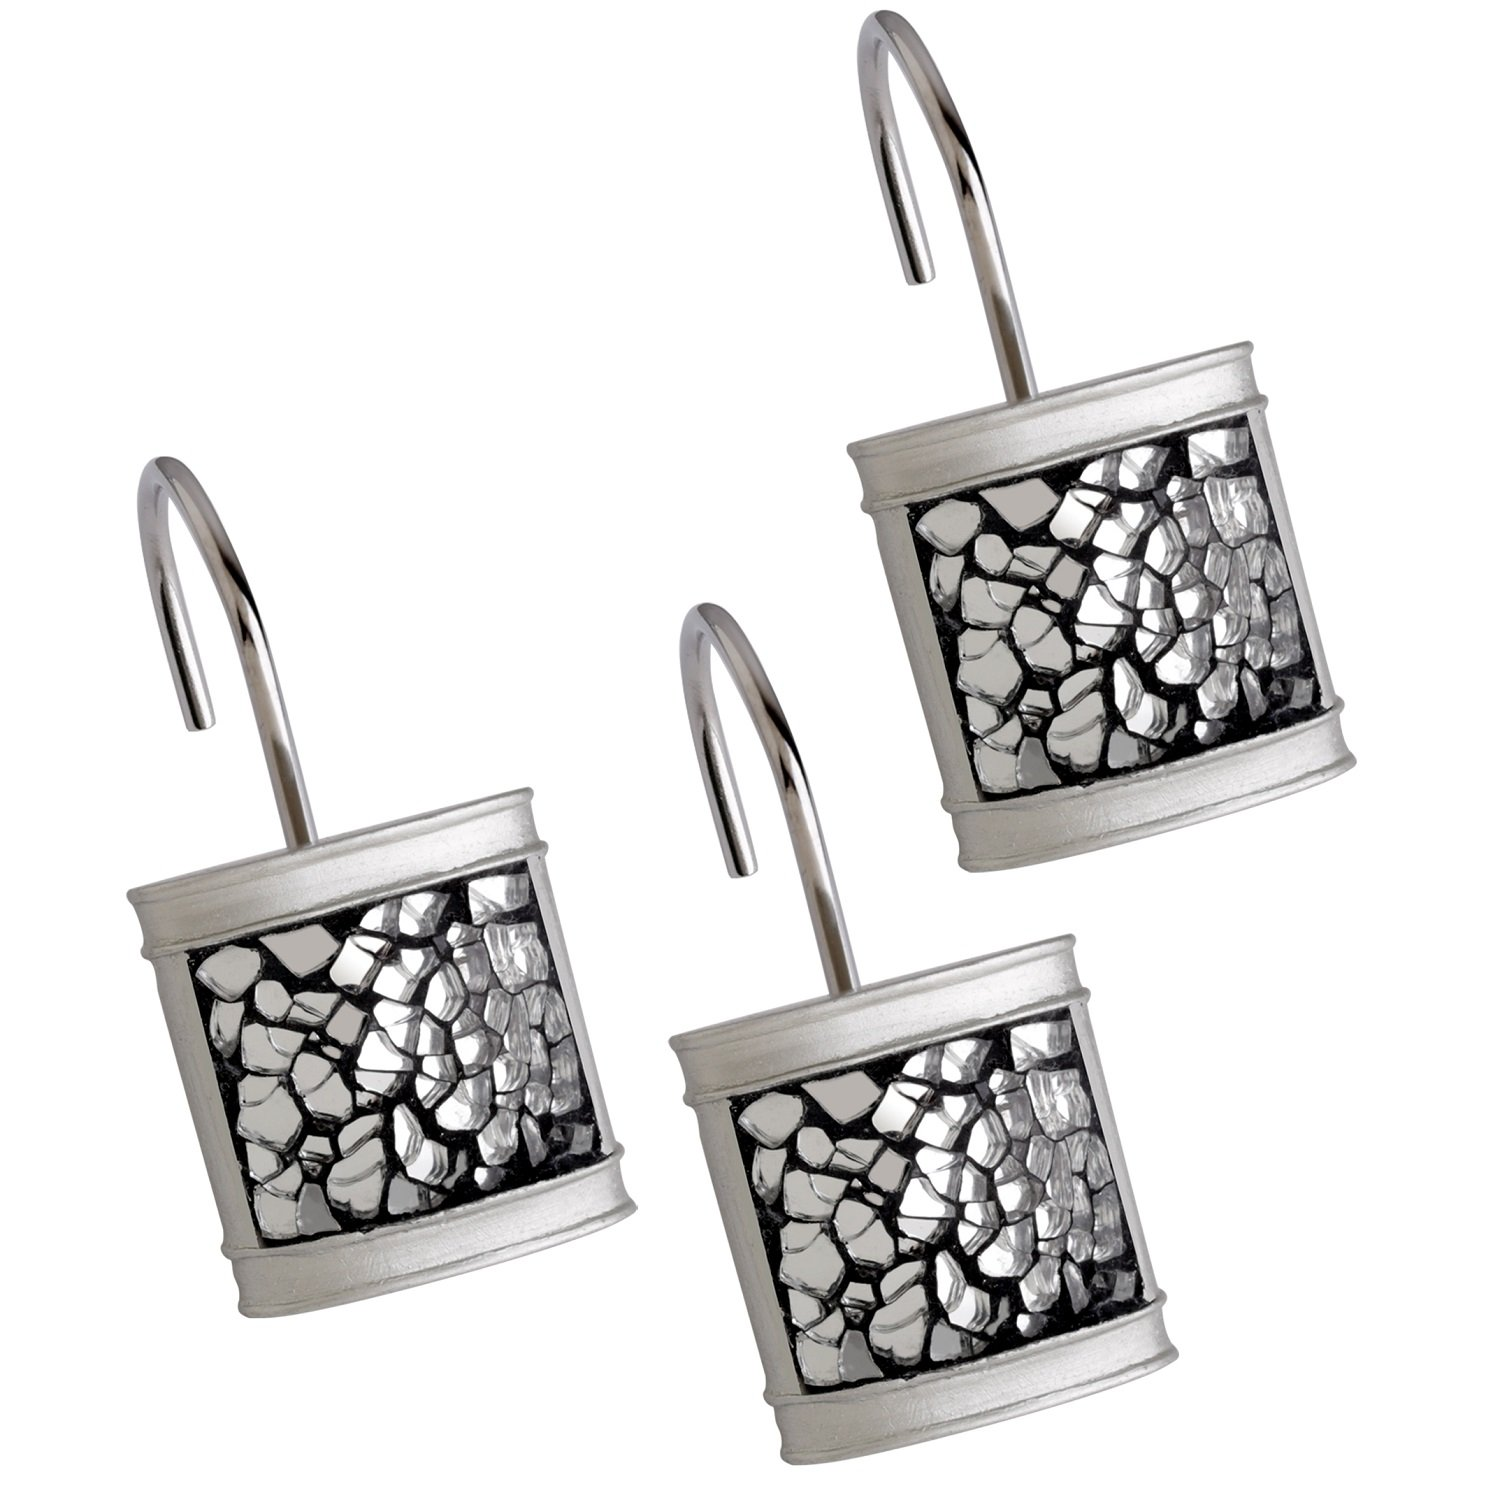 Creative Scents Shower Curtain Hooks - Set of 12 Shower Rings for Bathroom Shower Curtain Rod - 100% Rust Proof- Brushed Nickel Collection (Silver)